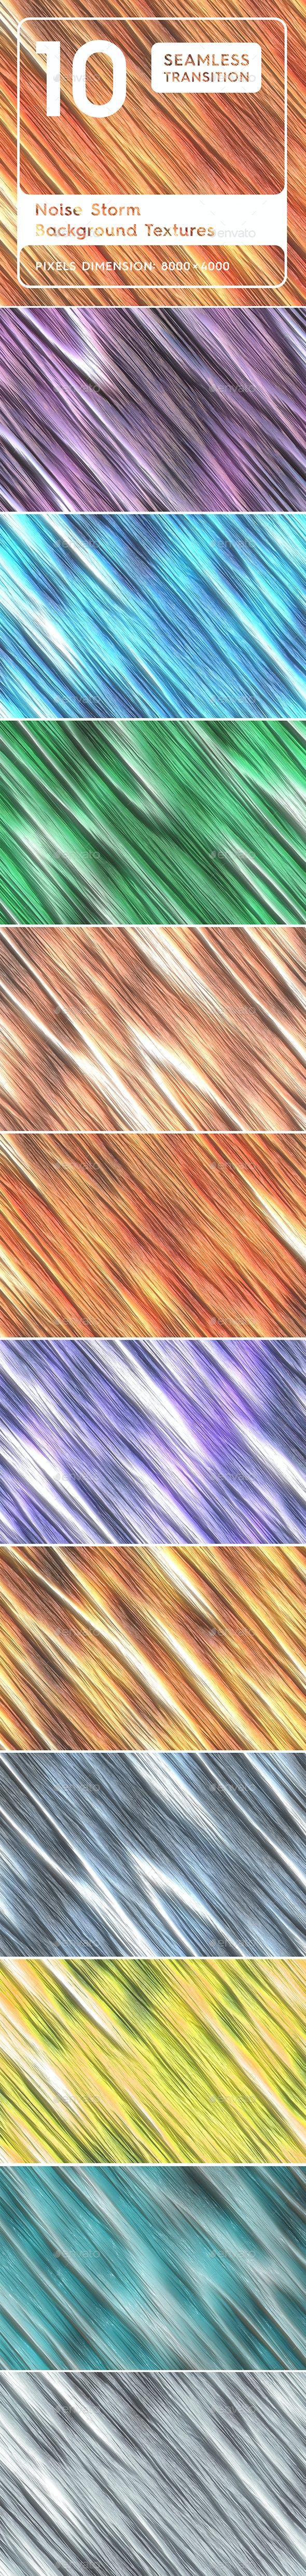 10 Noise Storm Background Textures. Seamless Transition. - 3DOcean Item for Sale